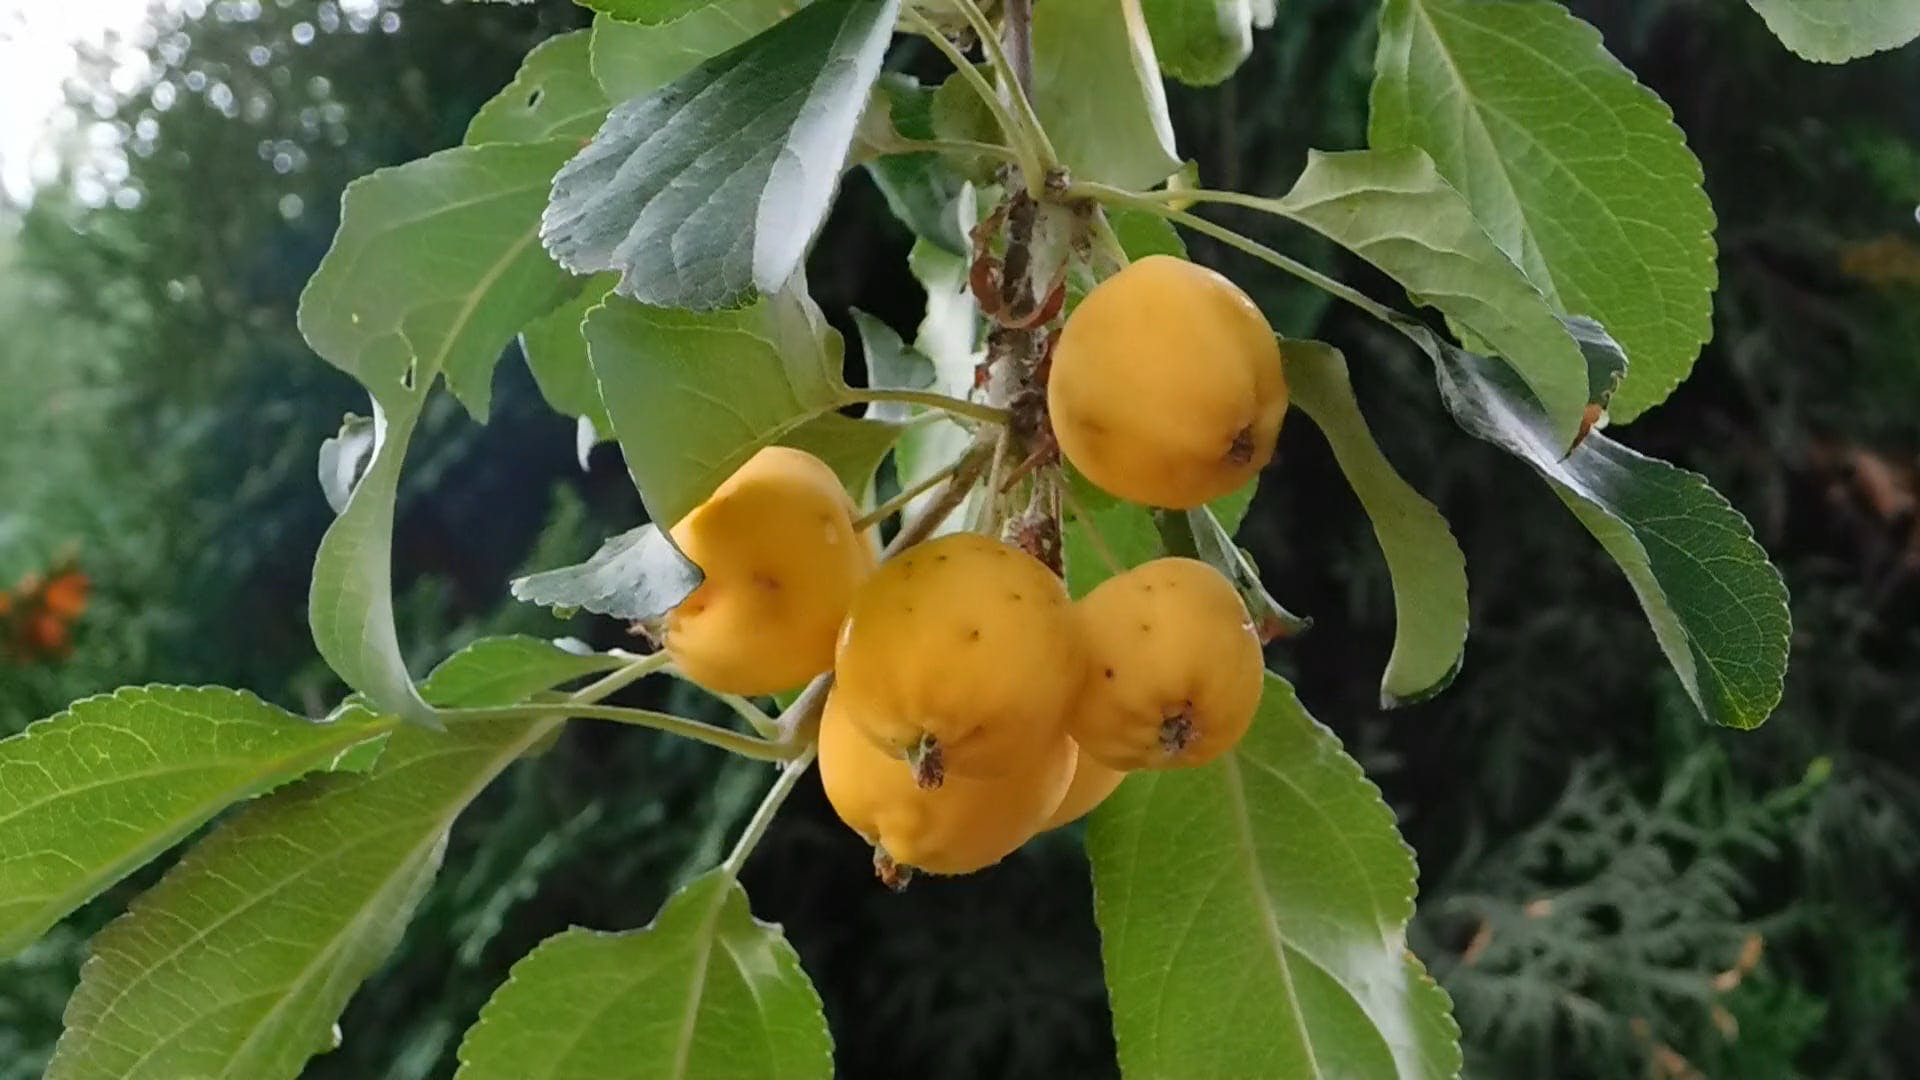 Close-up View Of Fruits On A Tree Branch